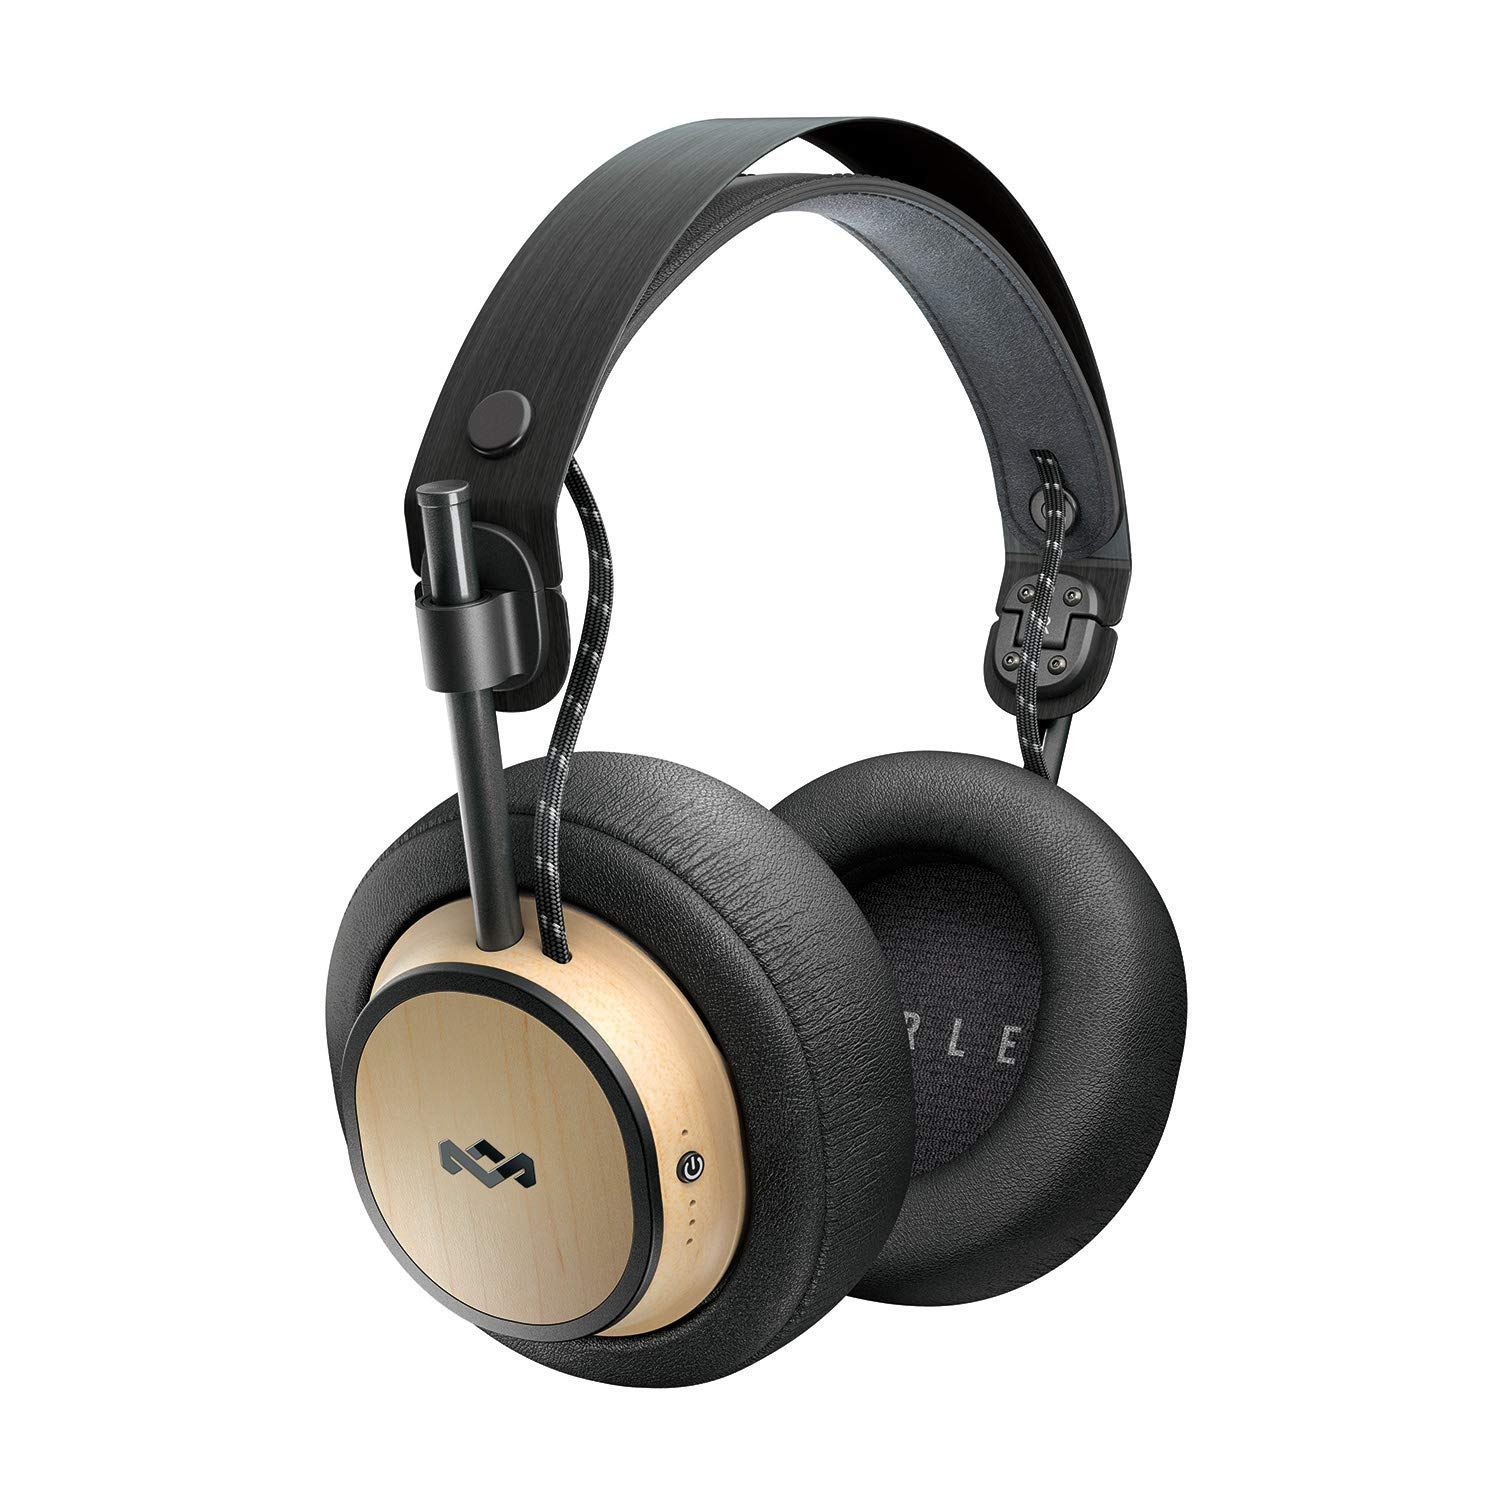 House Marley Headphone Definition Functionality